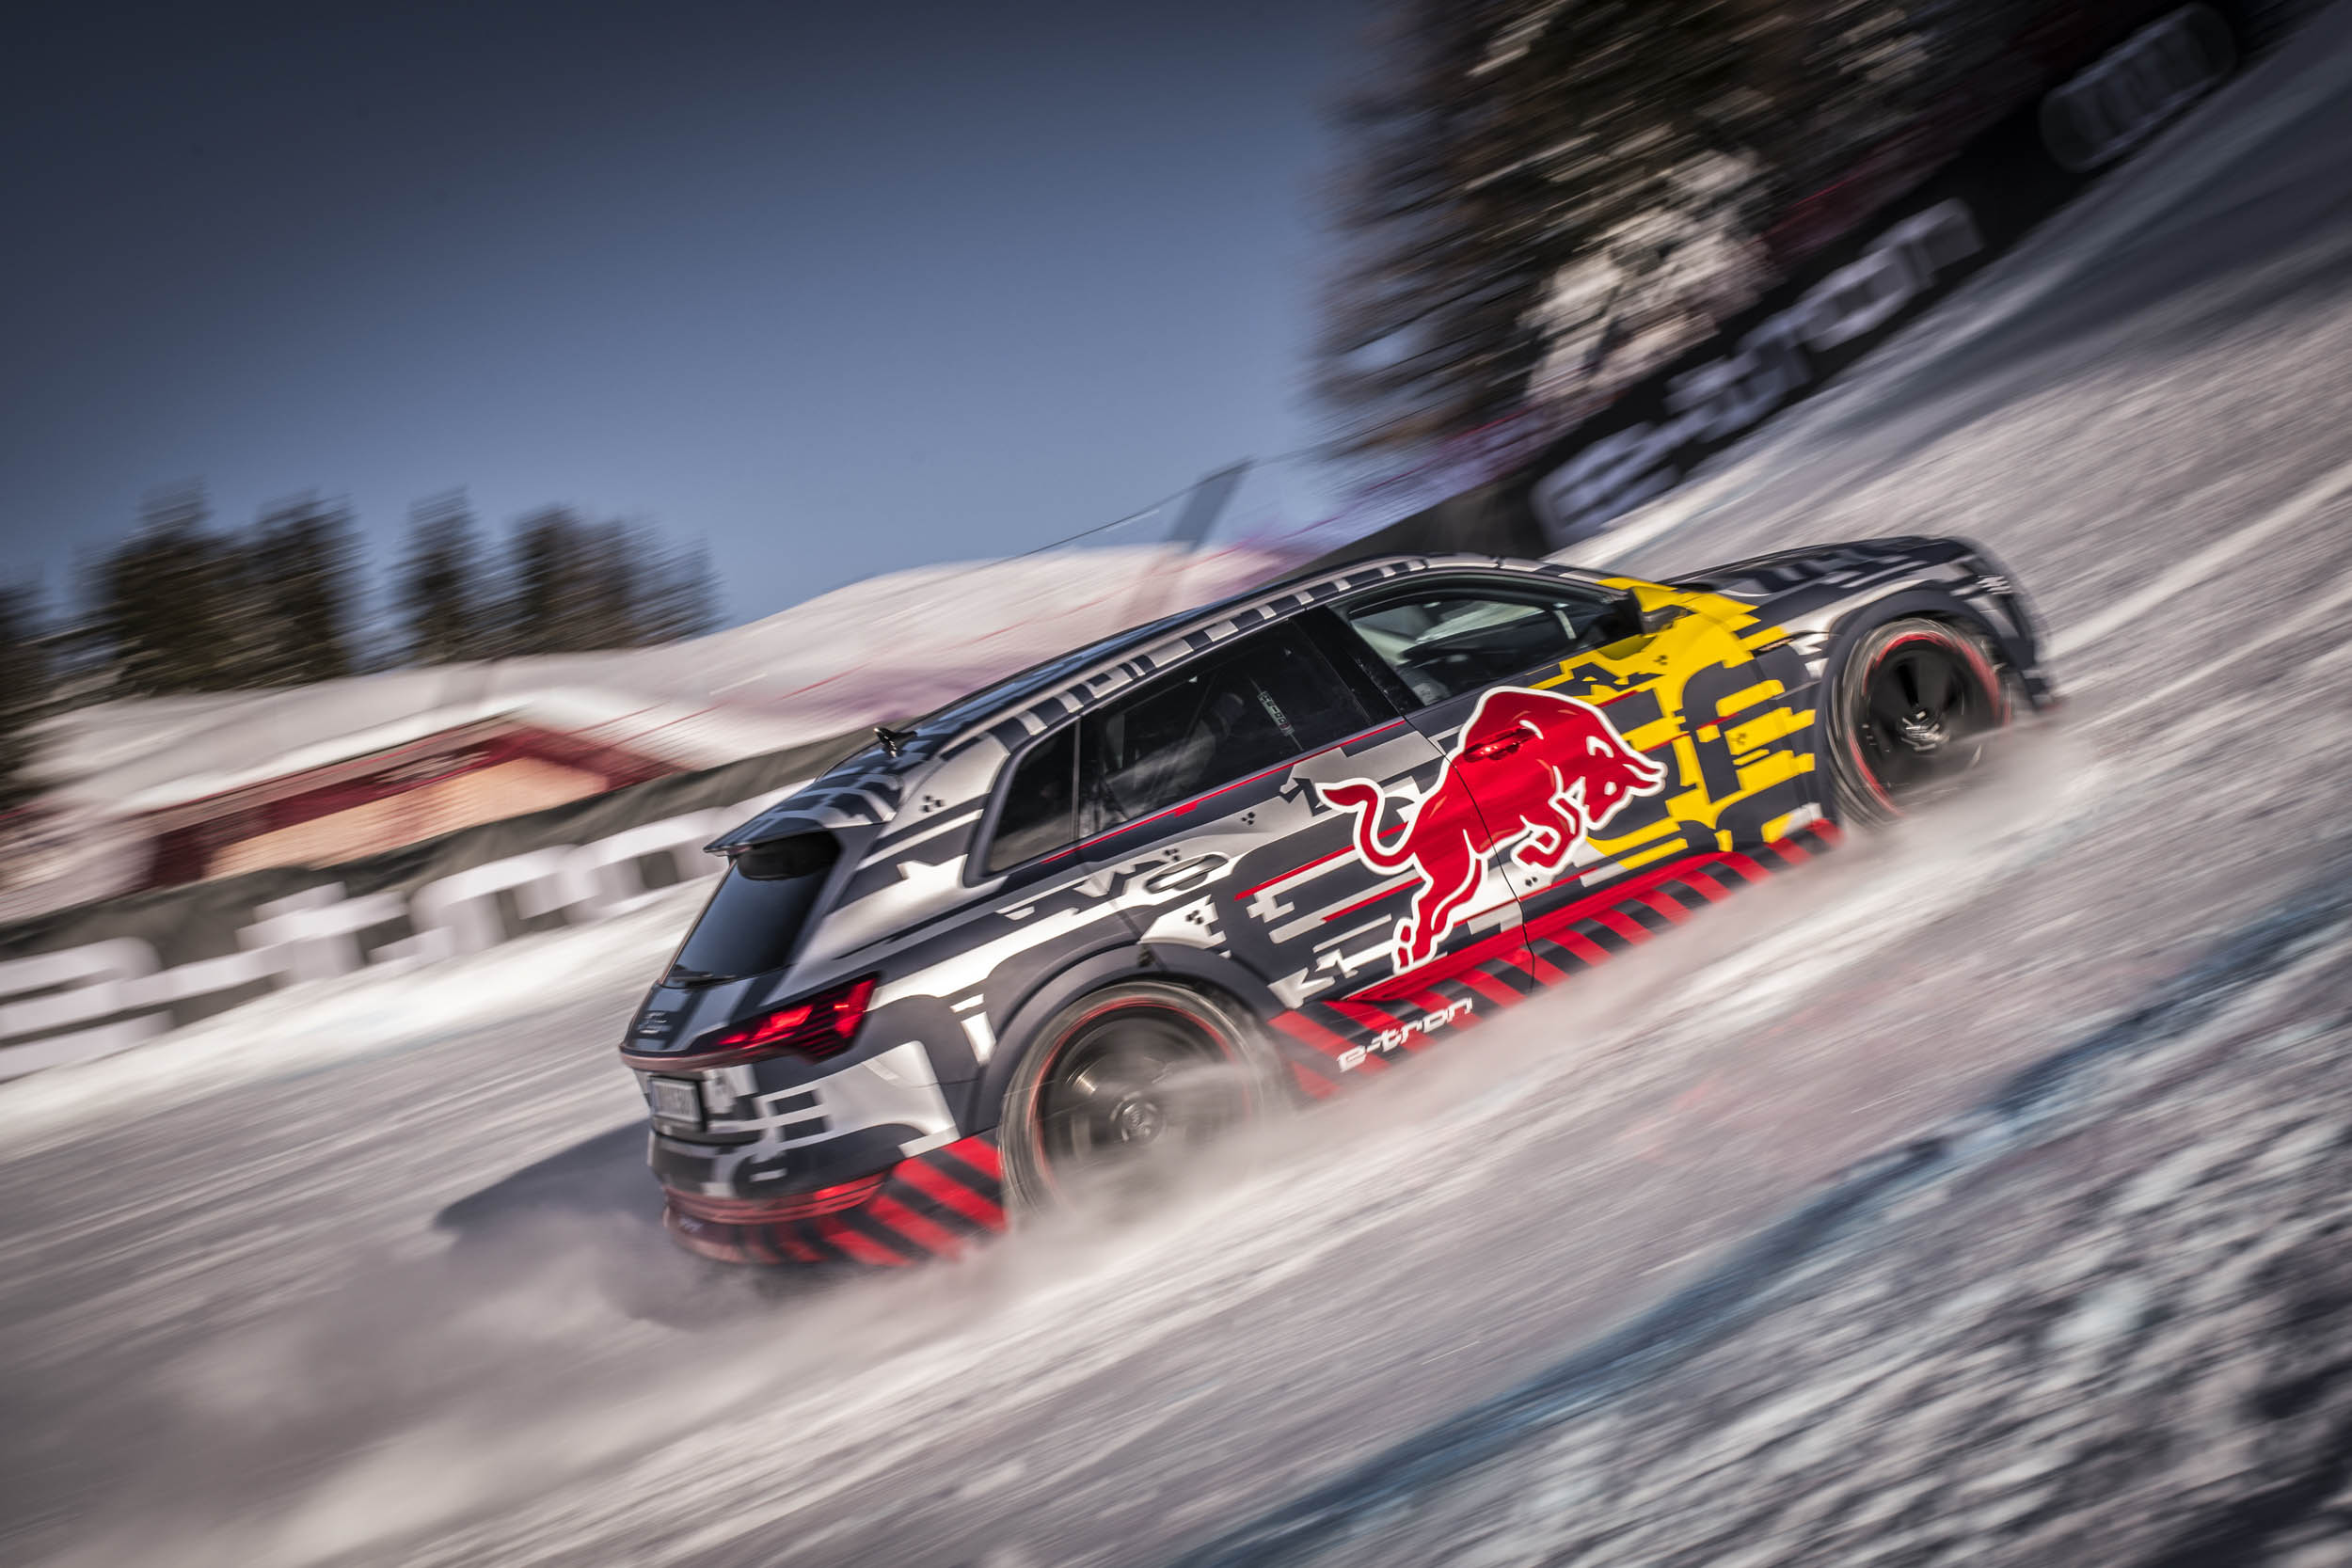 Audi revamps famous Quattro ski jump ad with all-electric e-tron SUV thumbnail